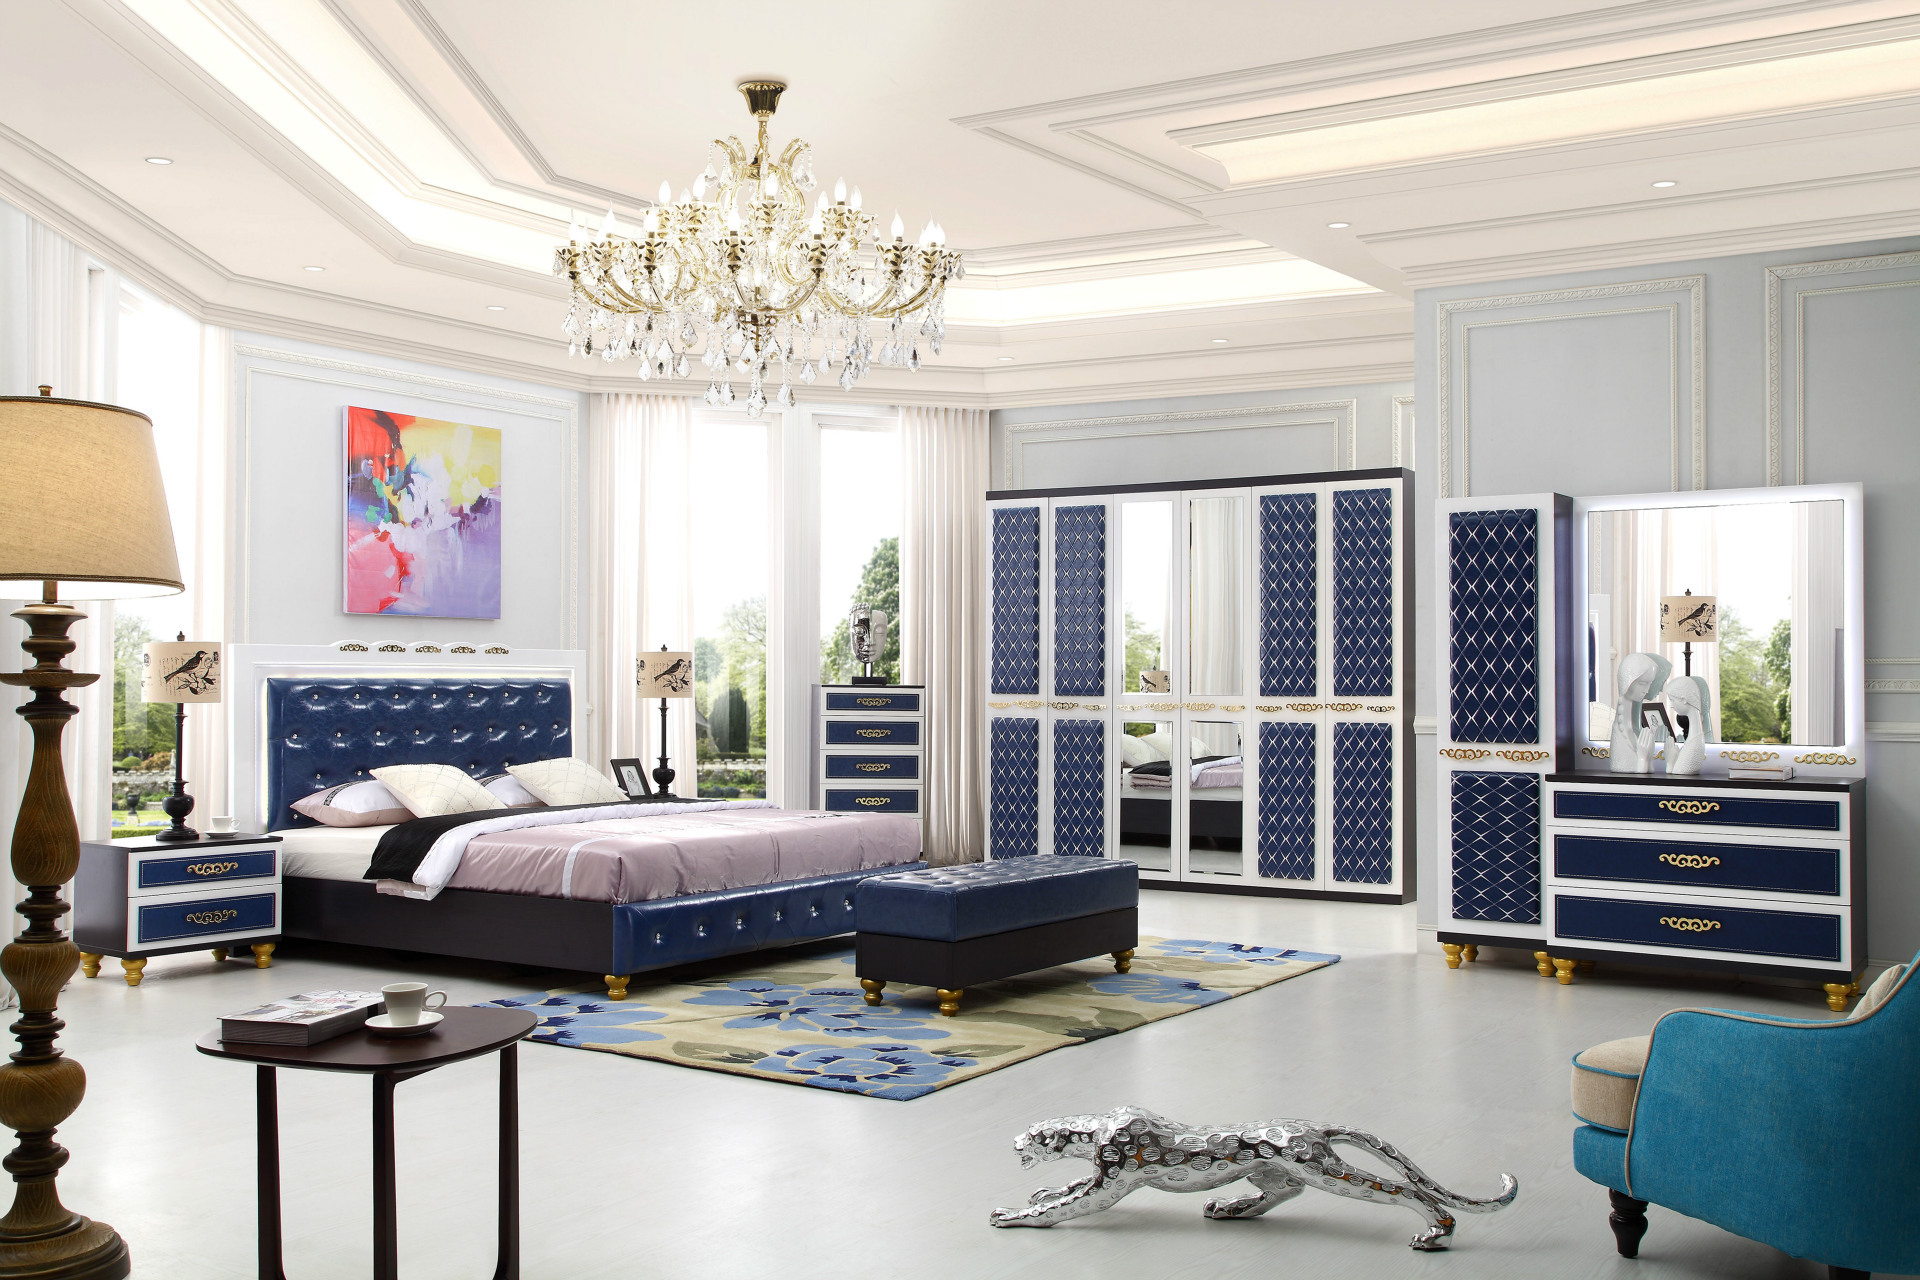 pare Prices on Bedroom Sets Wholesale line Shopping Buy Low